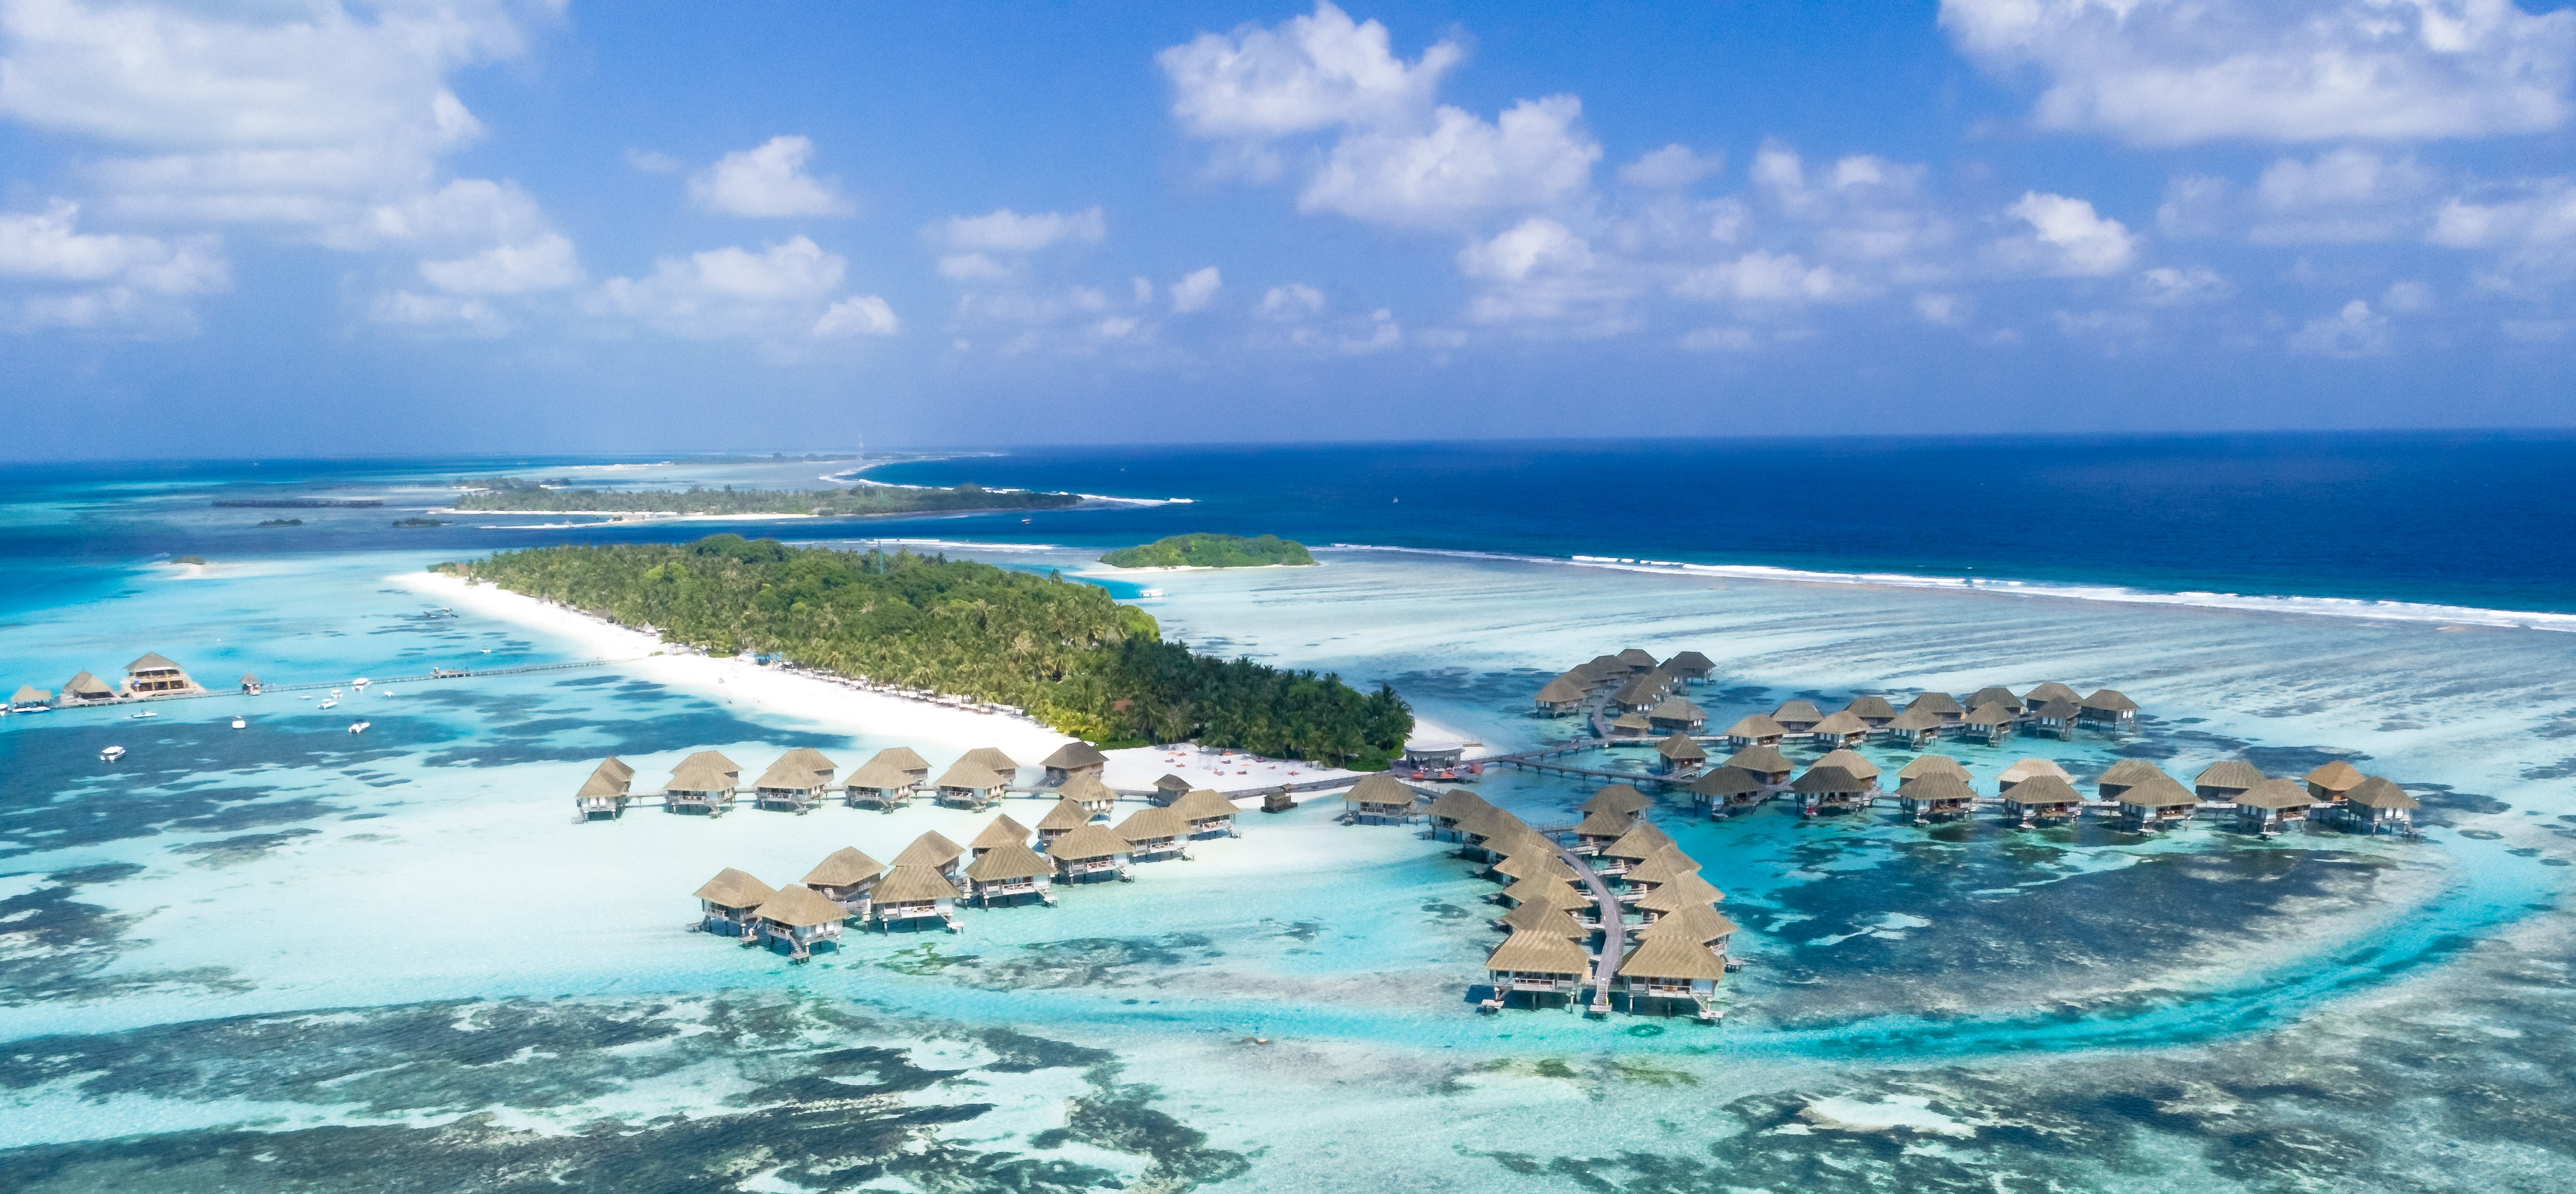 where is the Maldives located